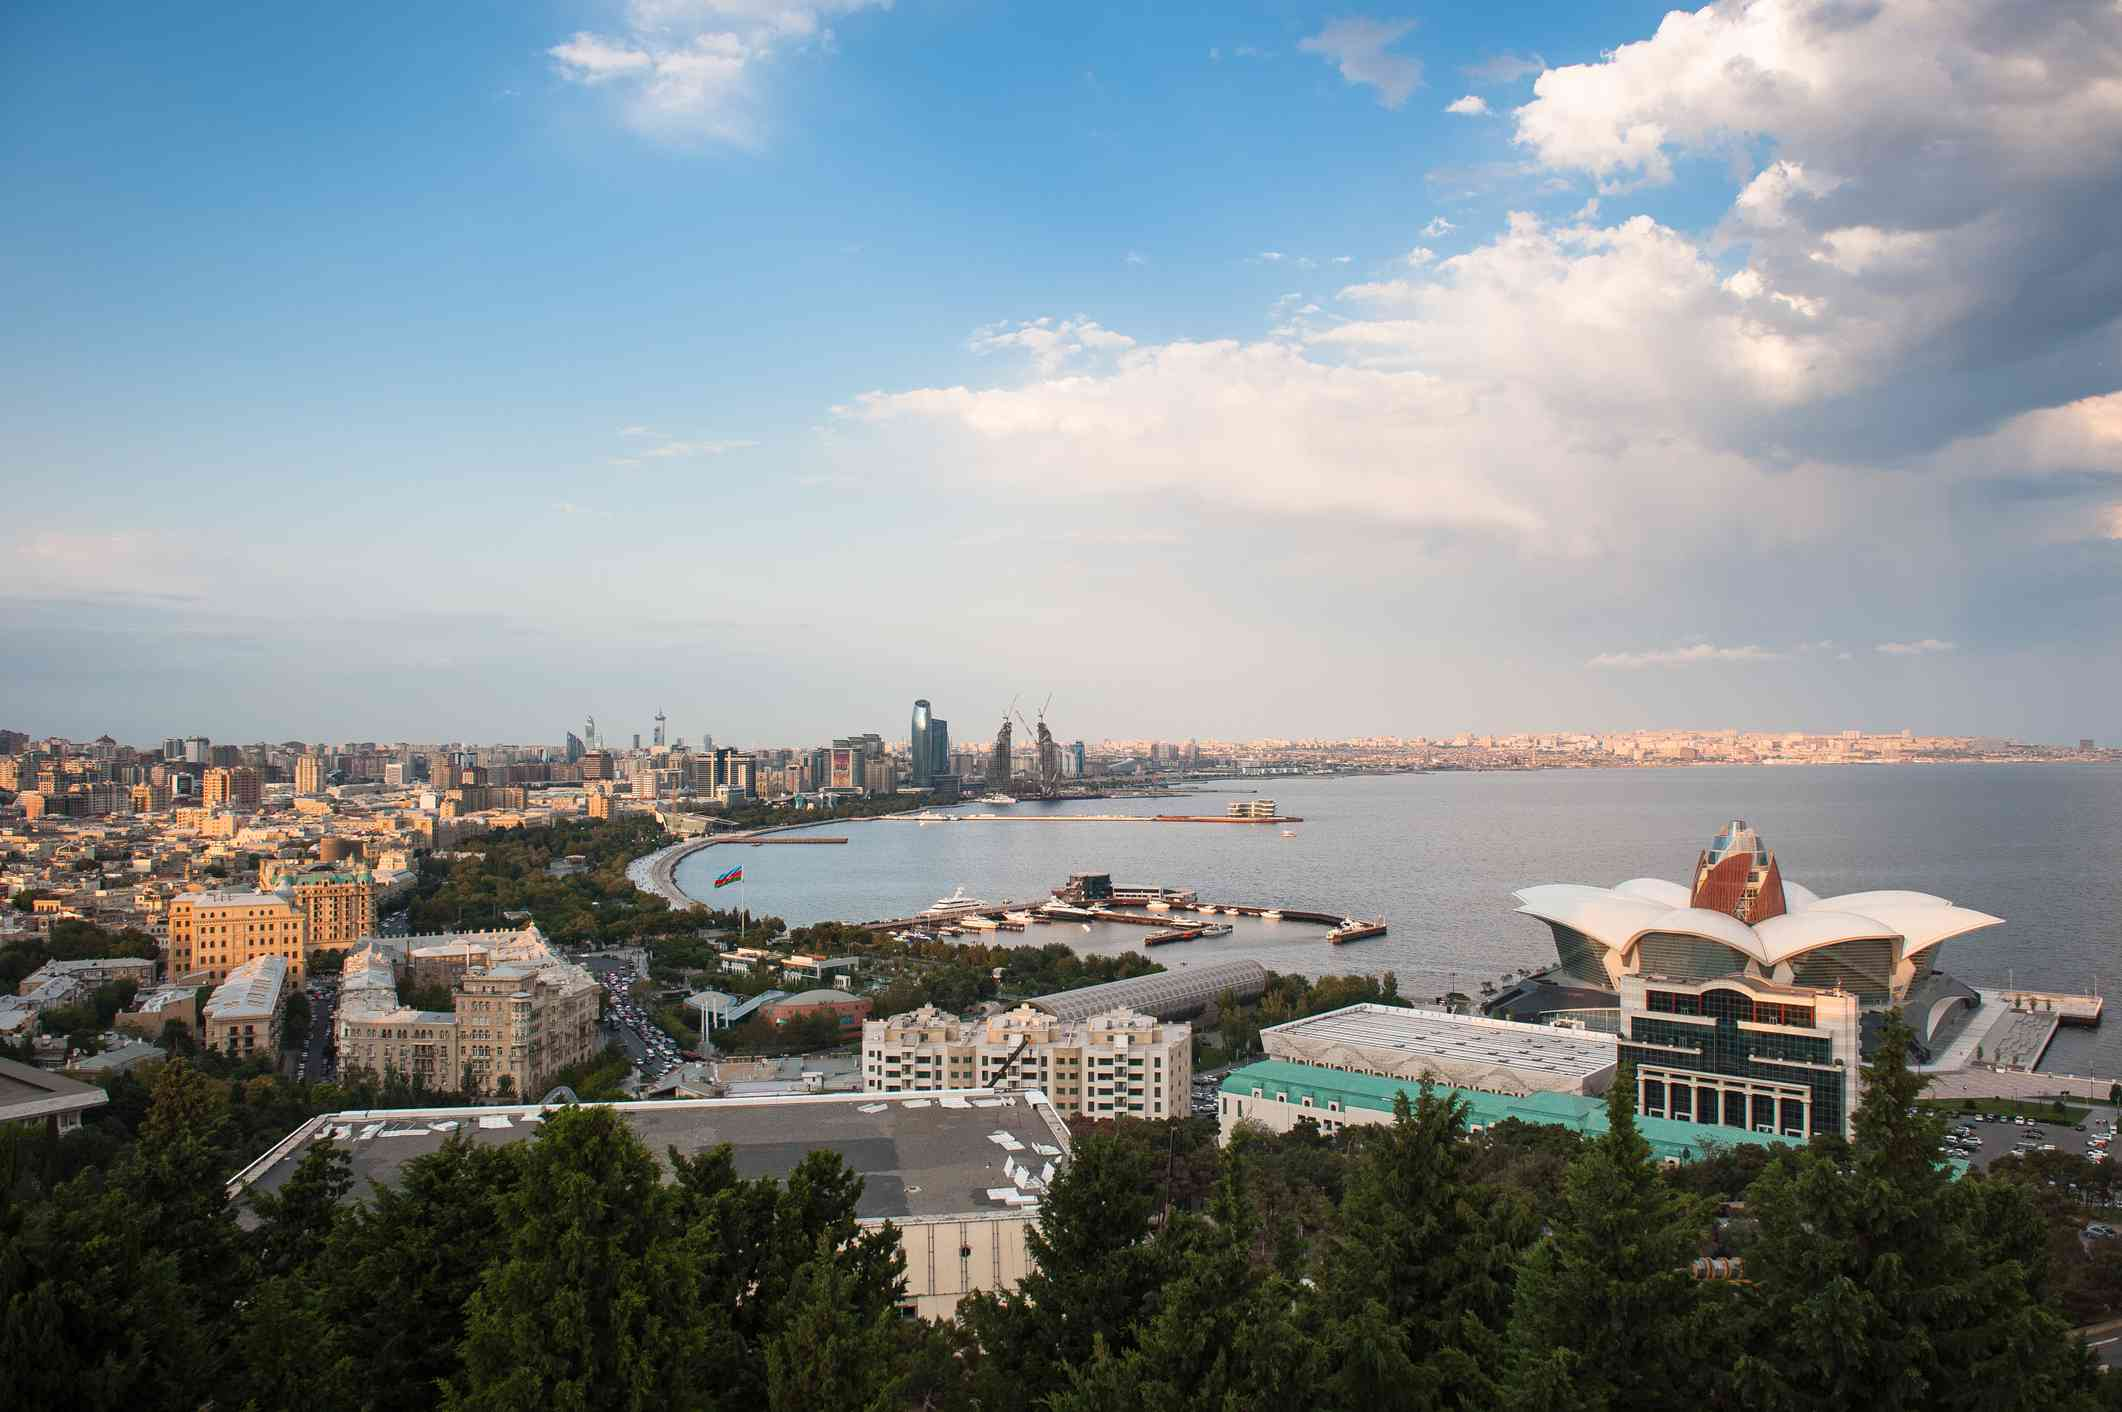 A view of the Caspian Sea from the shores of Azerbaijan